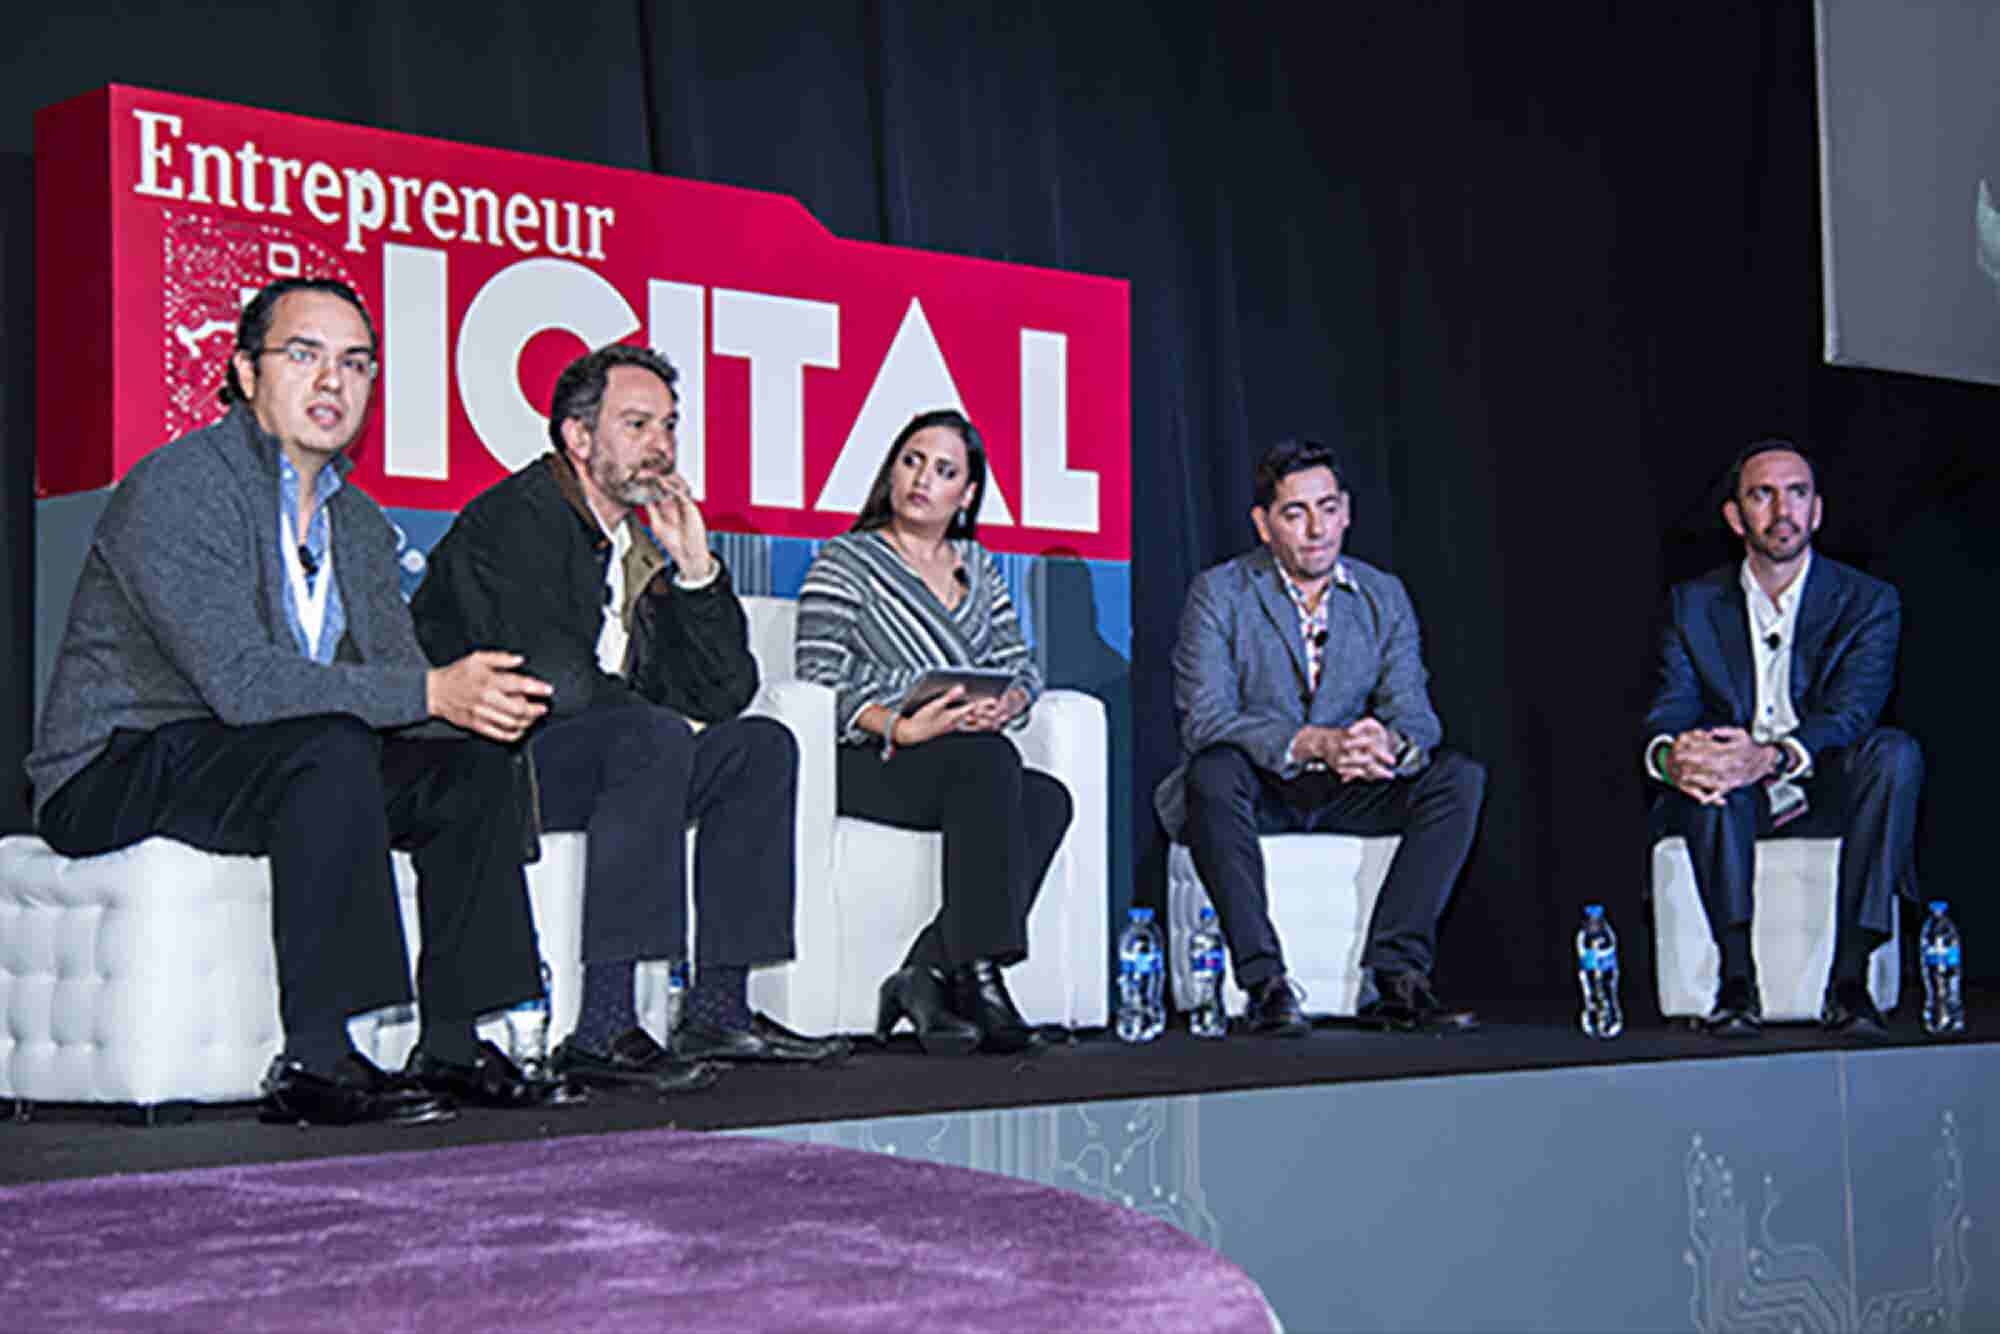 #EDigital: evento para digitalizar tu negocio